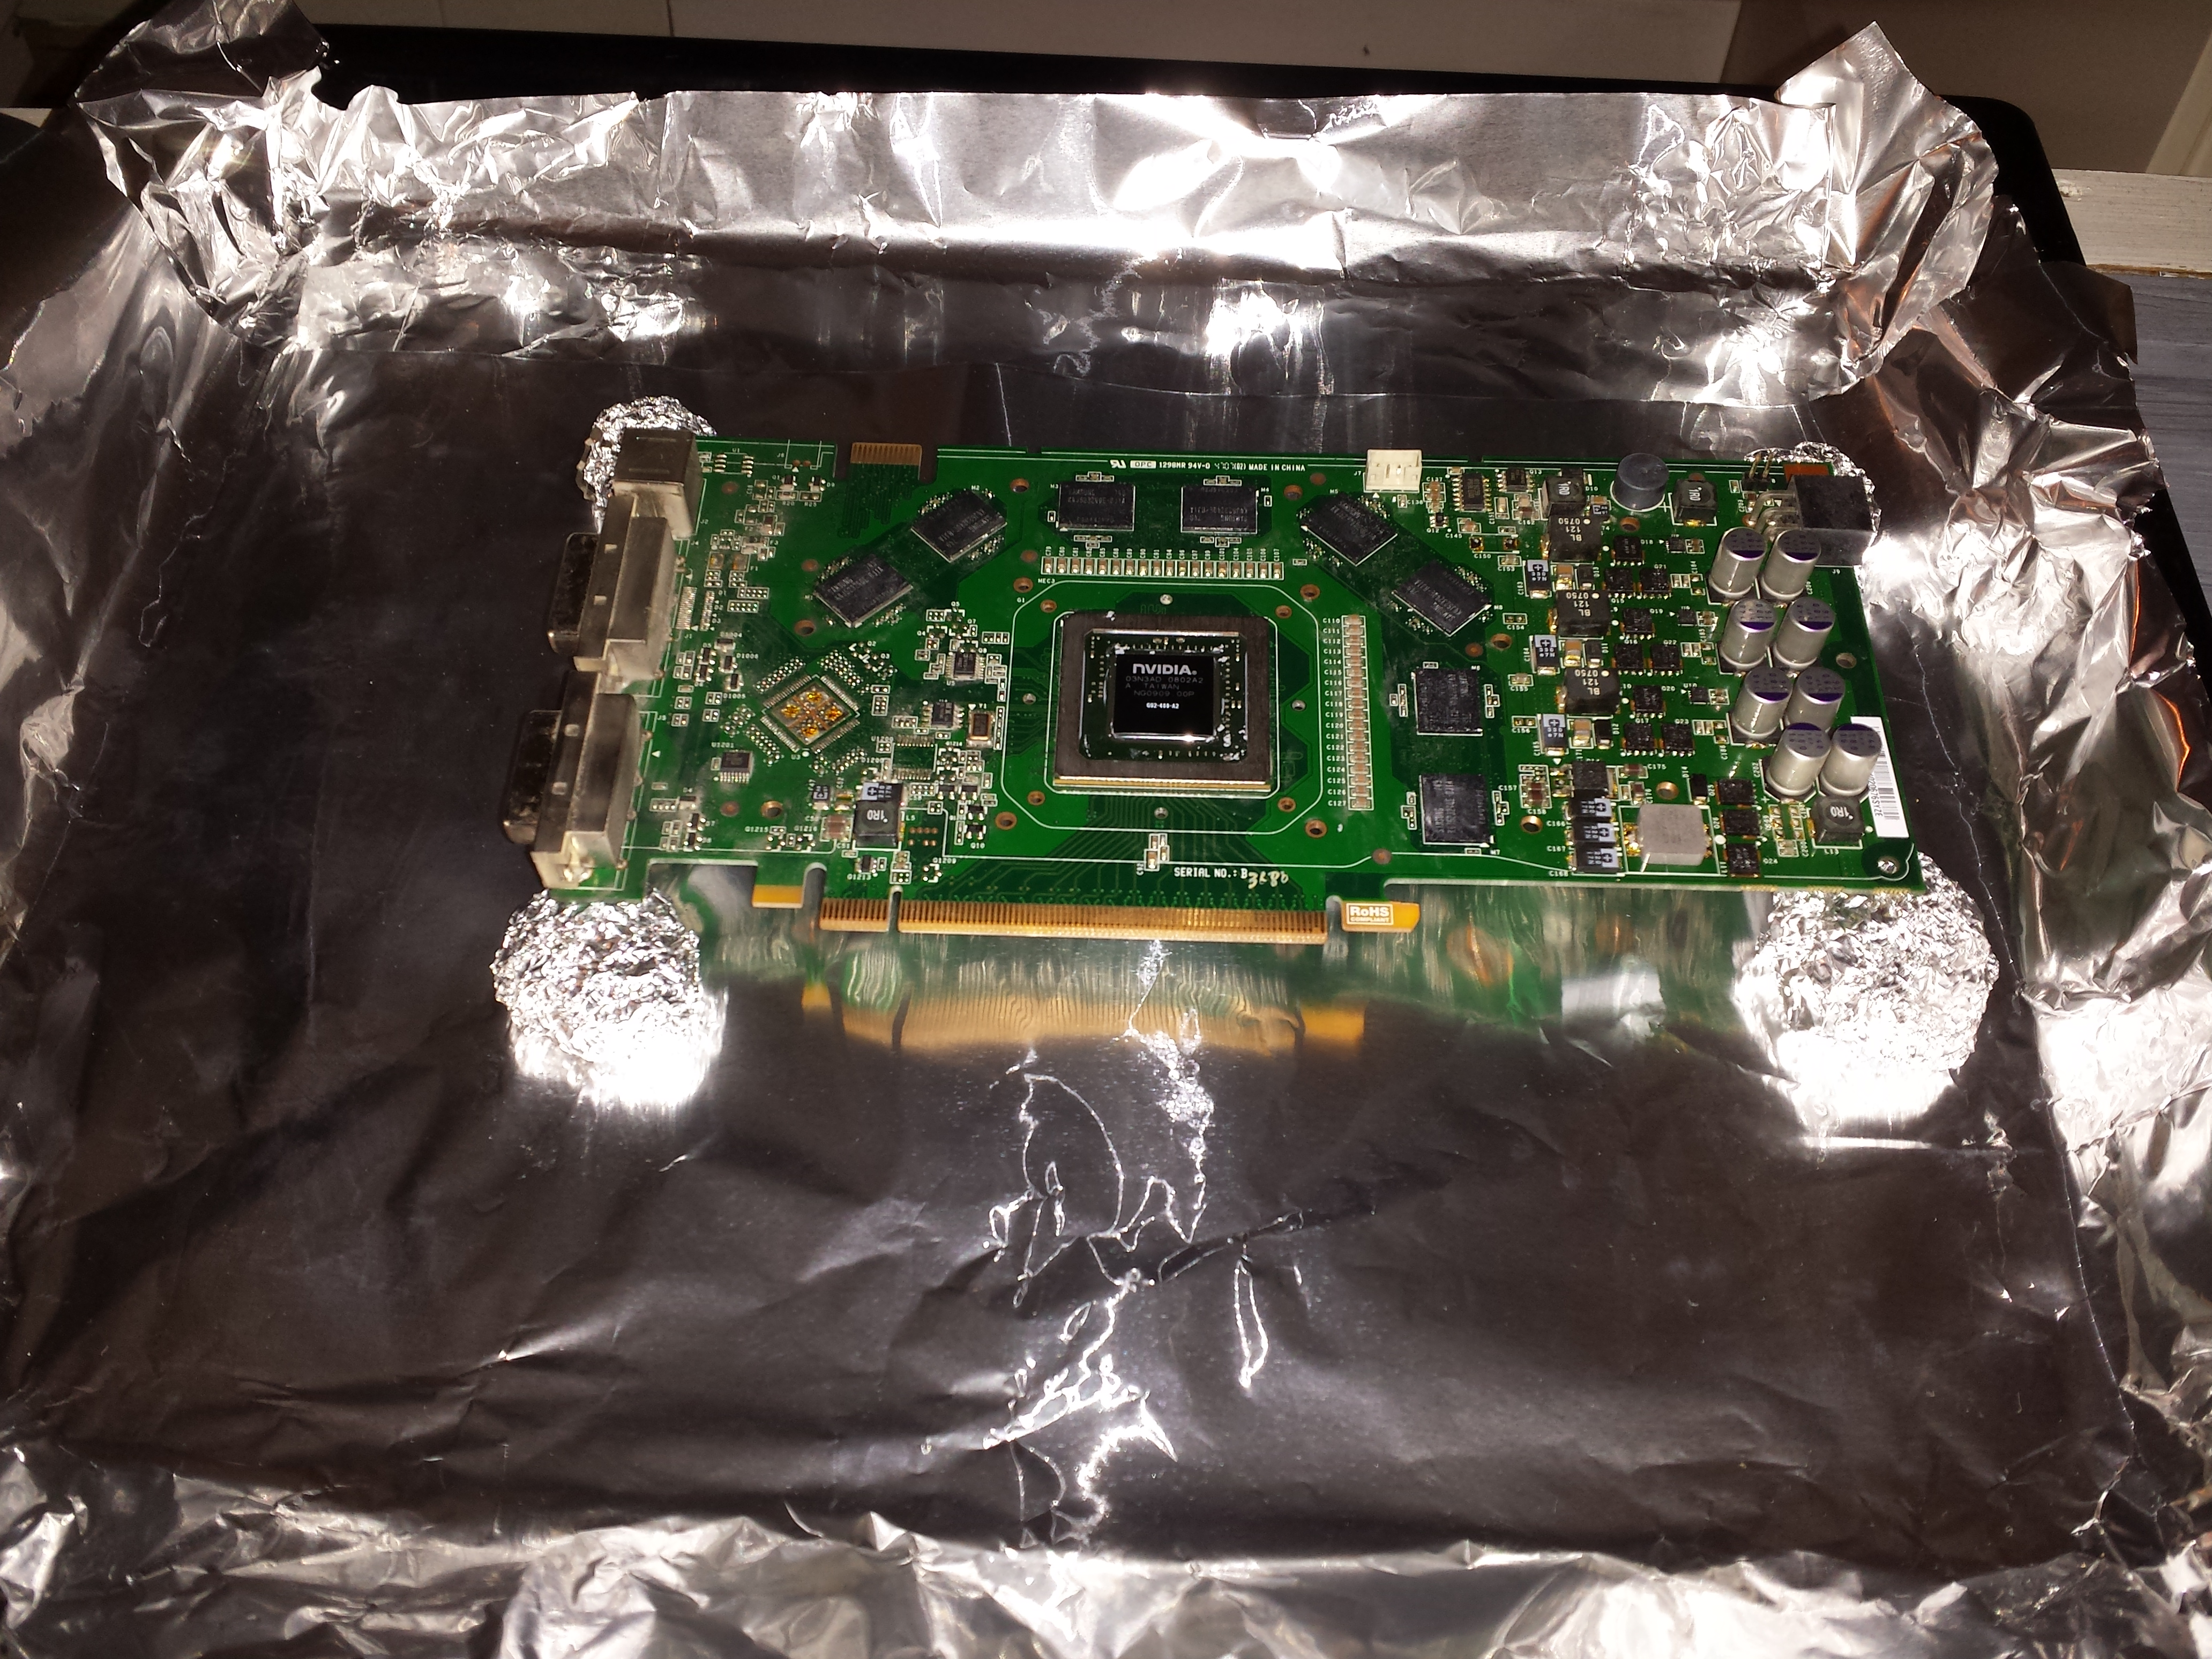 Just baked my graphics card  What can I expect? - Overclock